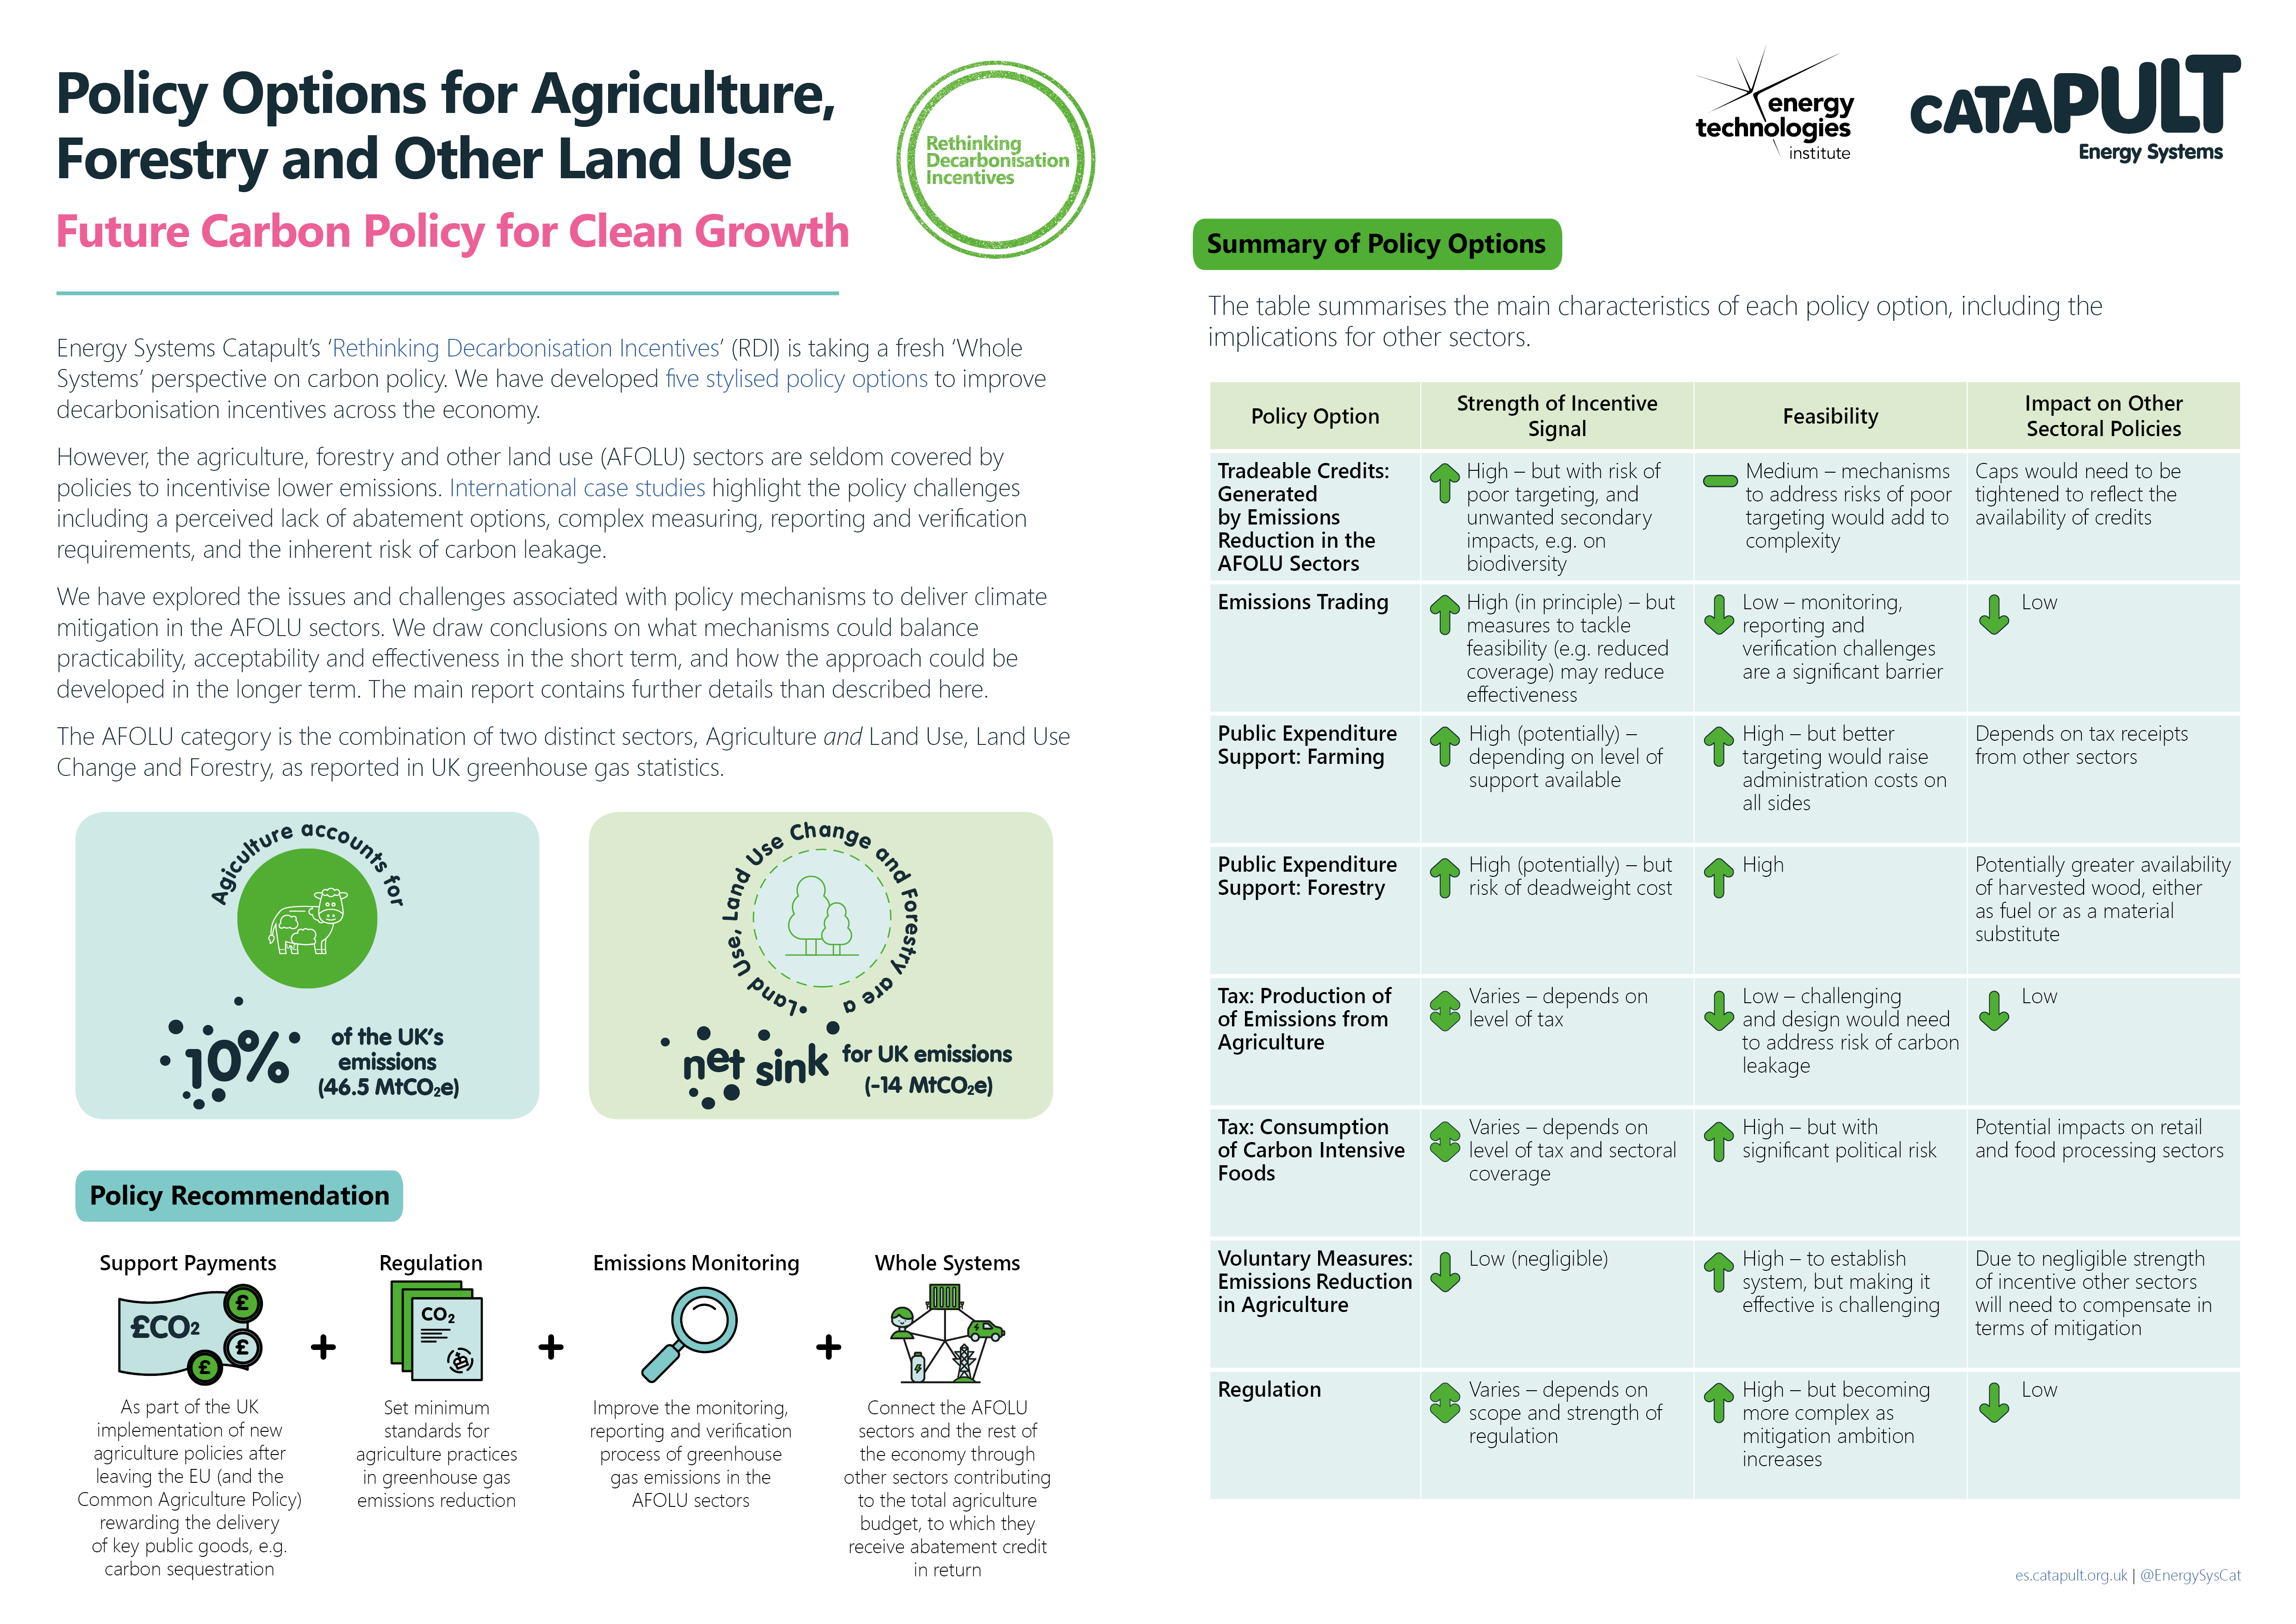 Figure 2: Policy Options for Agriculture, Forestry and Other Land Use